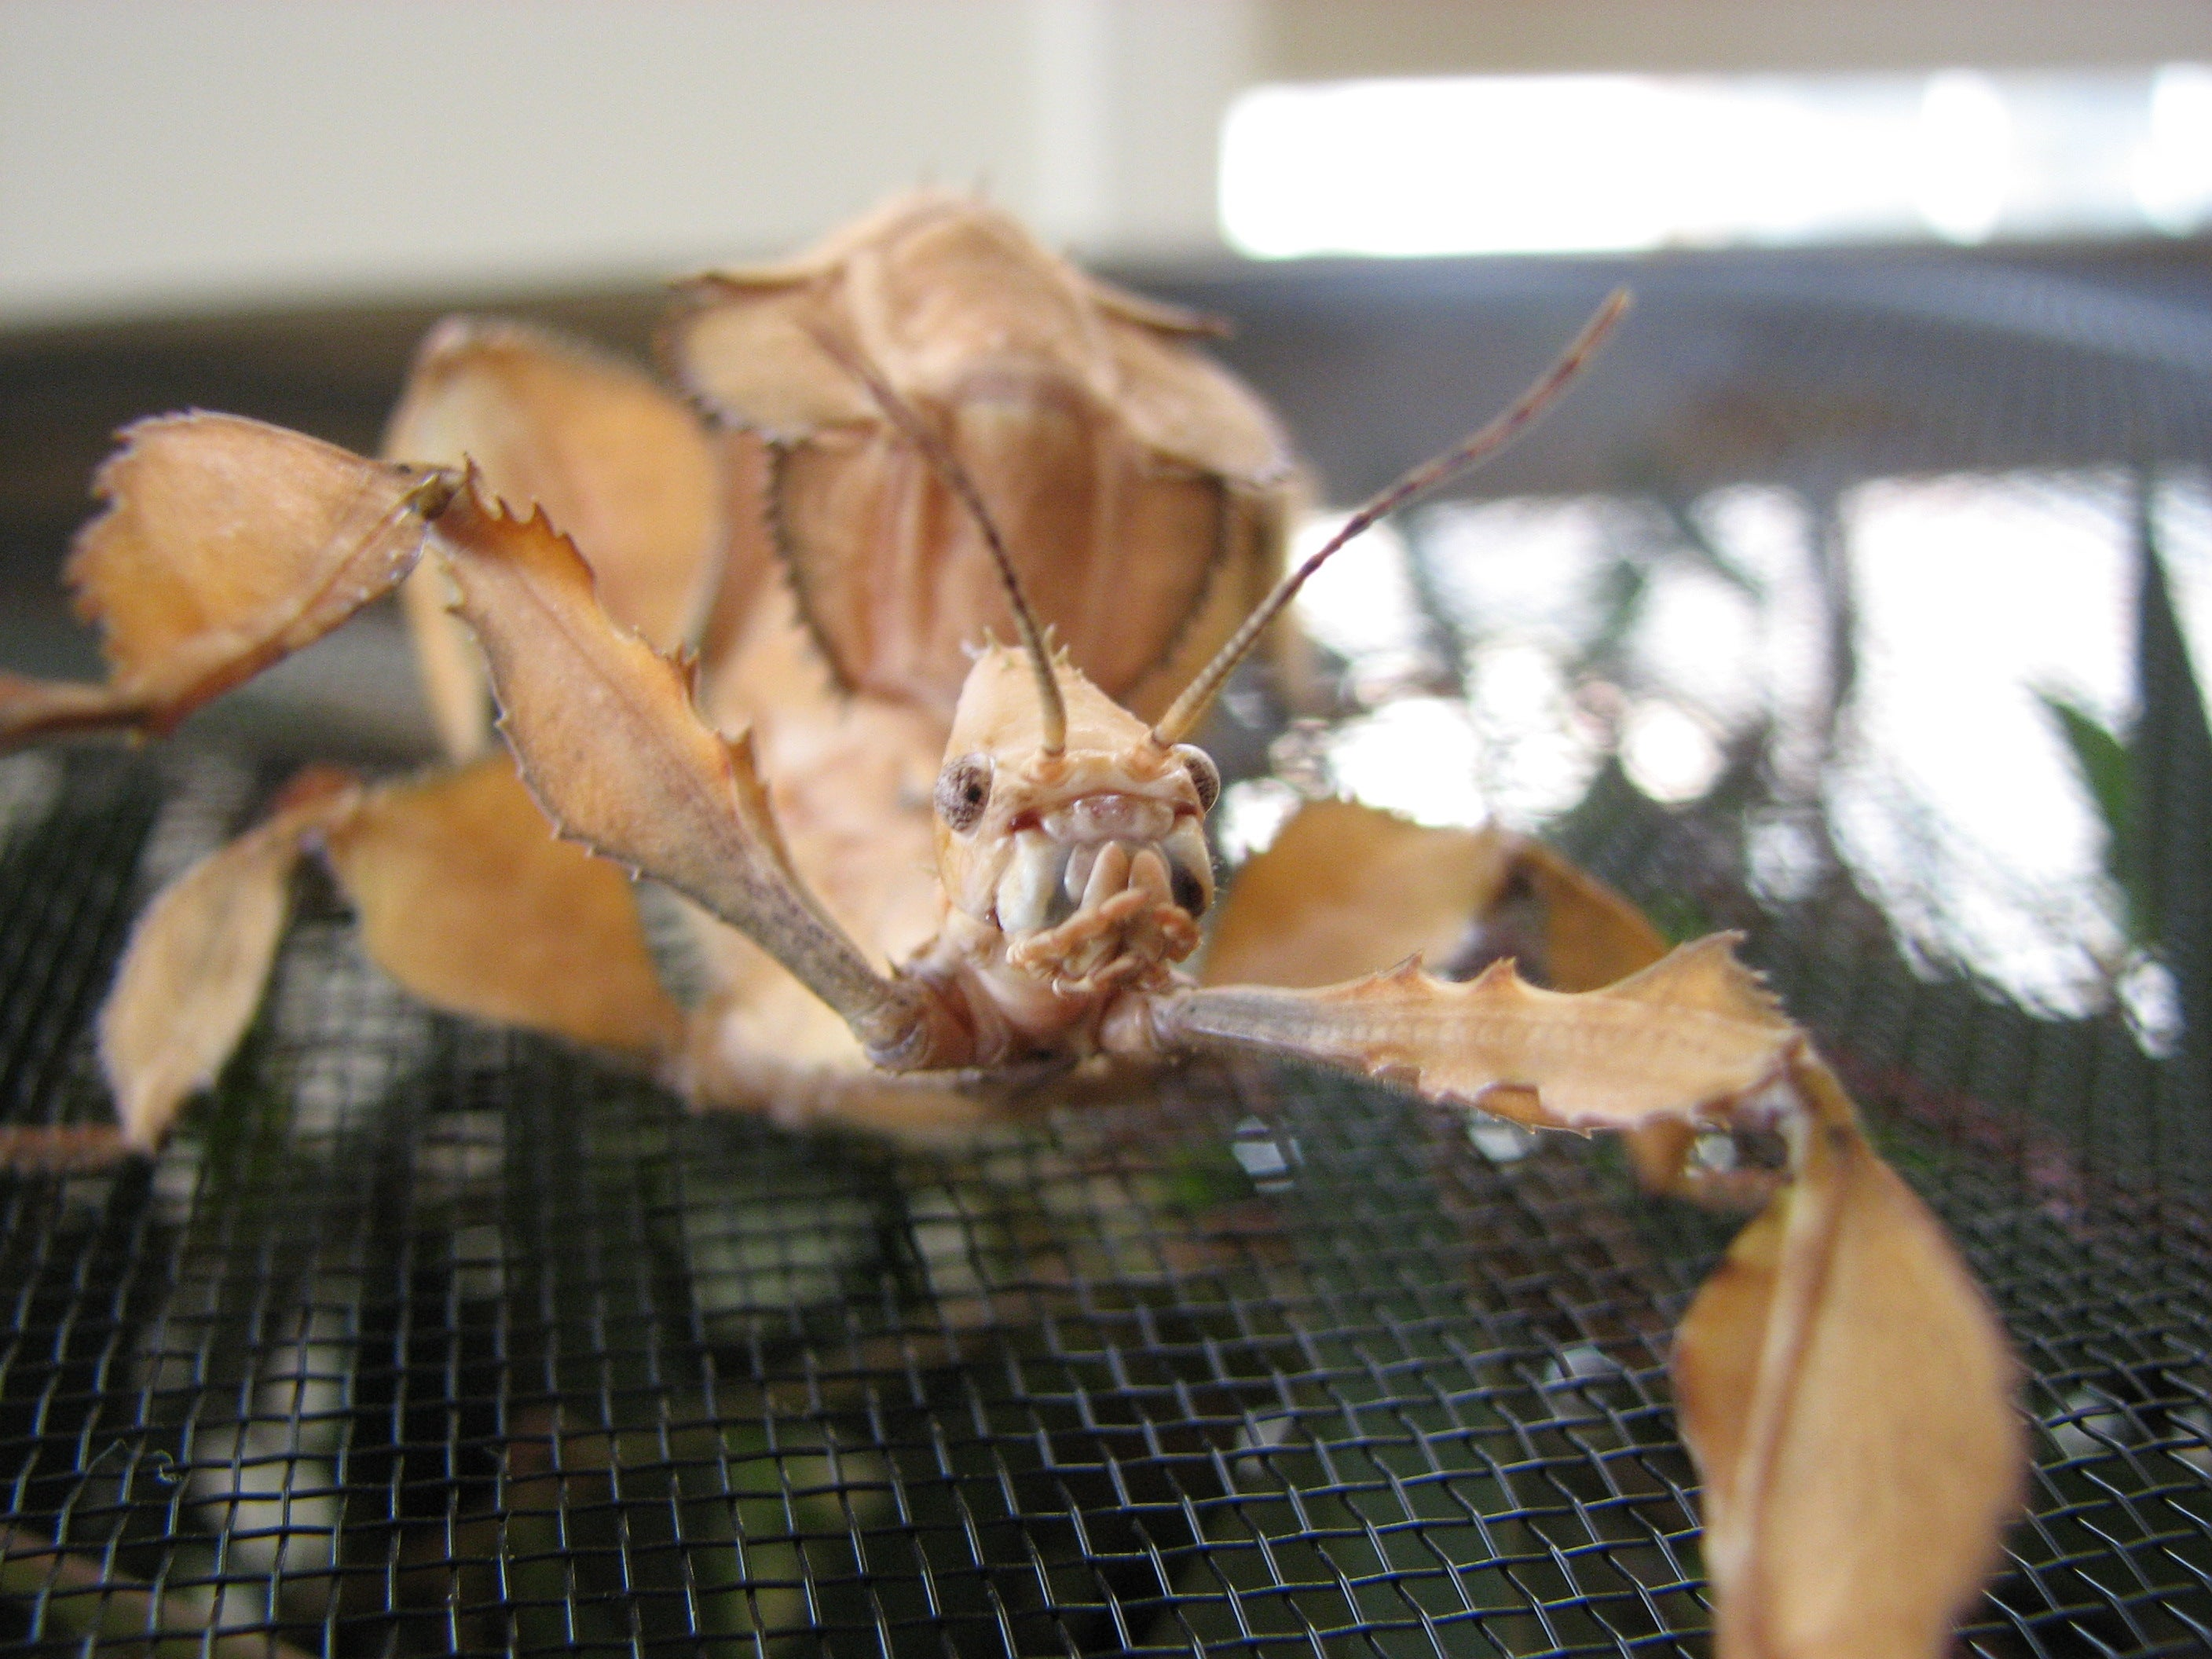 How To Keep A Pet Spiny Leaf Insect 7 Steps With Pictures Instructables